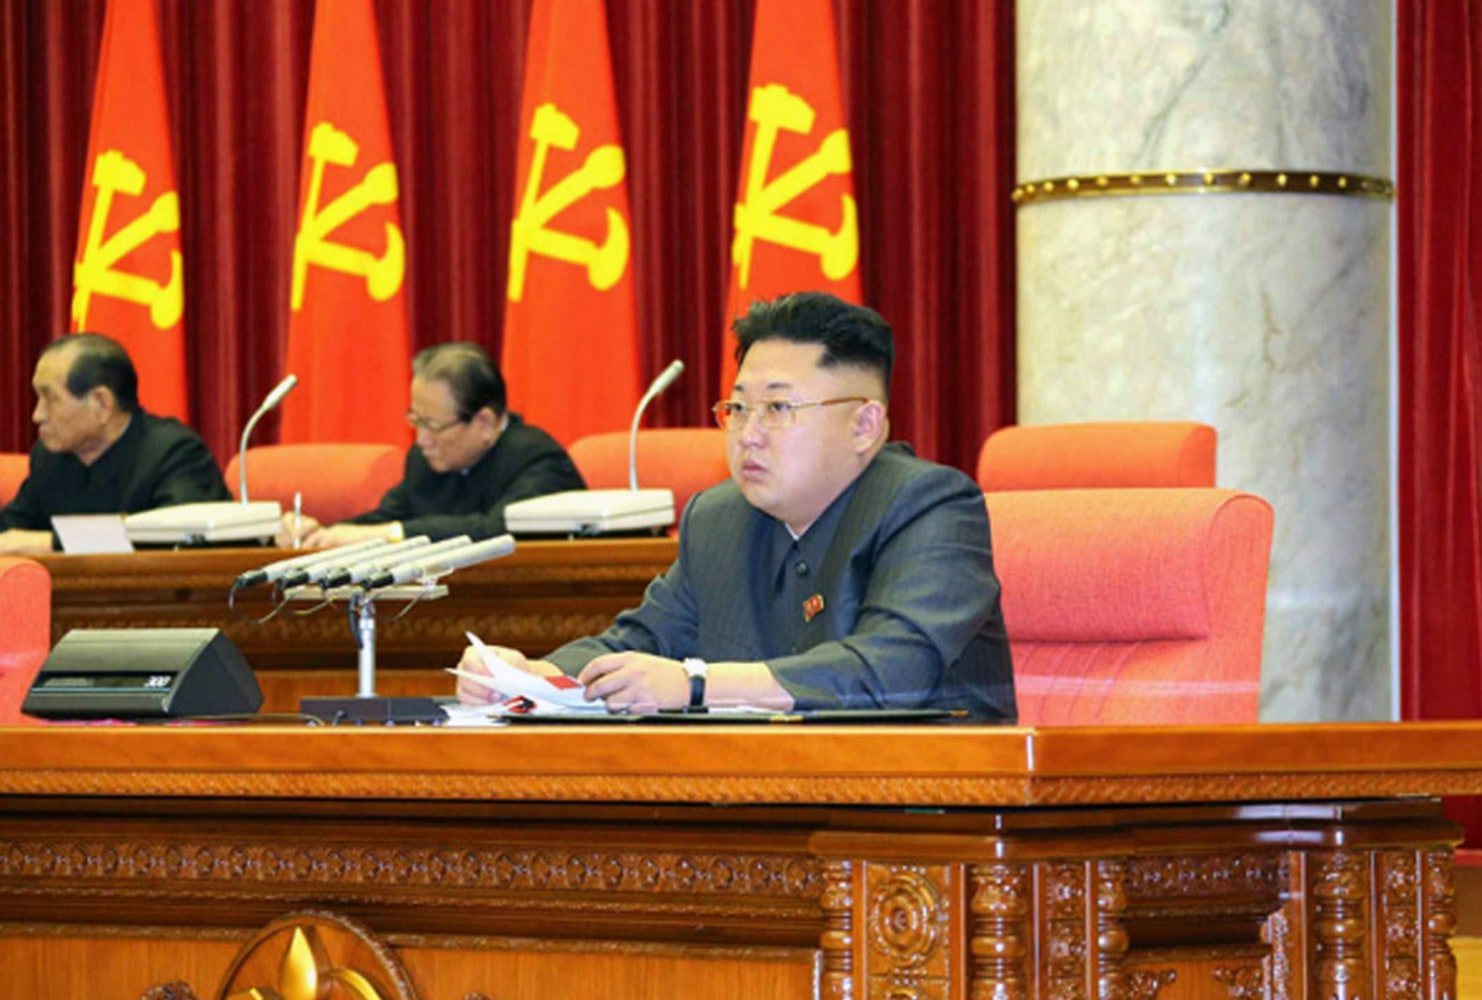 Kim Jong Un 39 S Uncle Dragged Away From Meeting Erased From